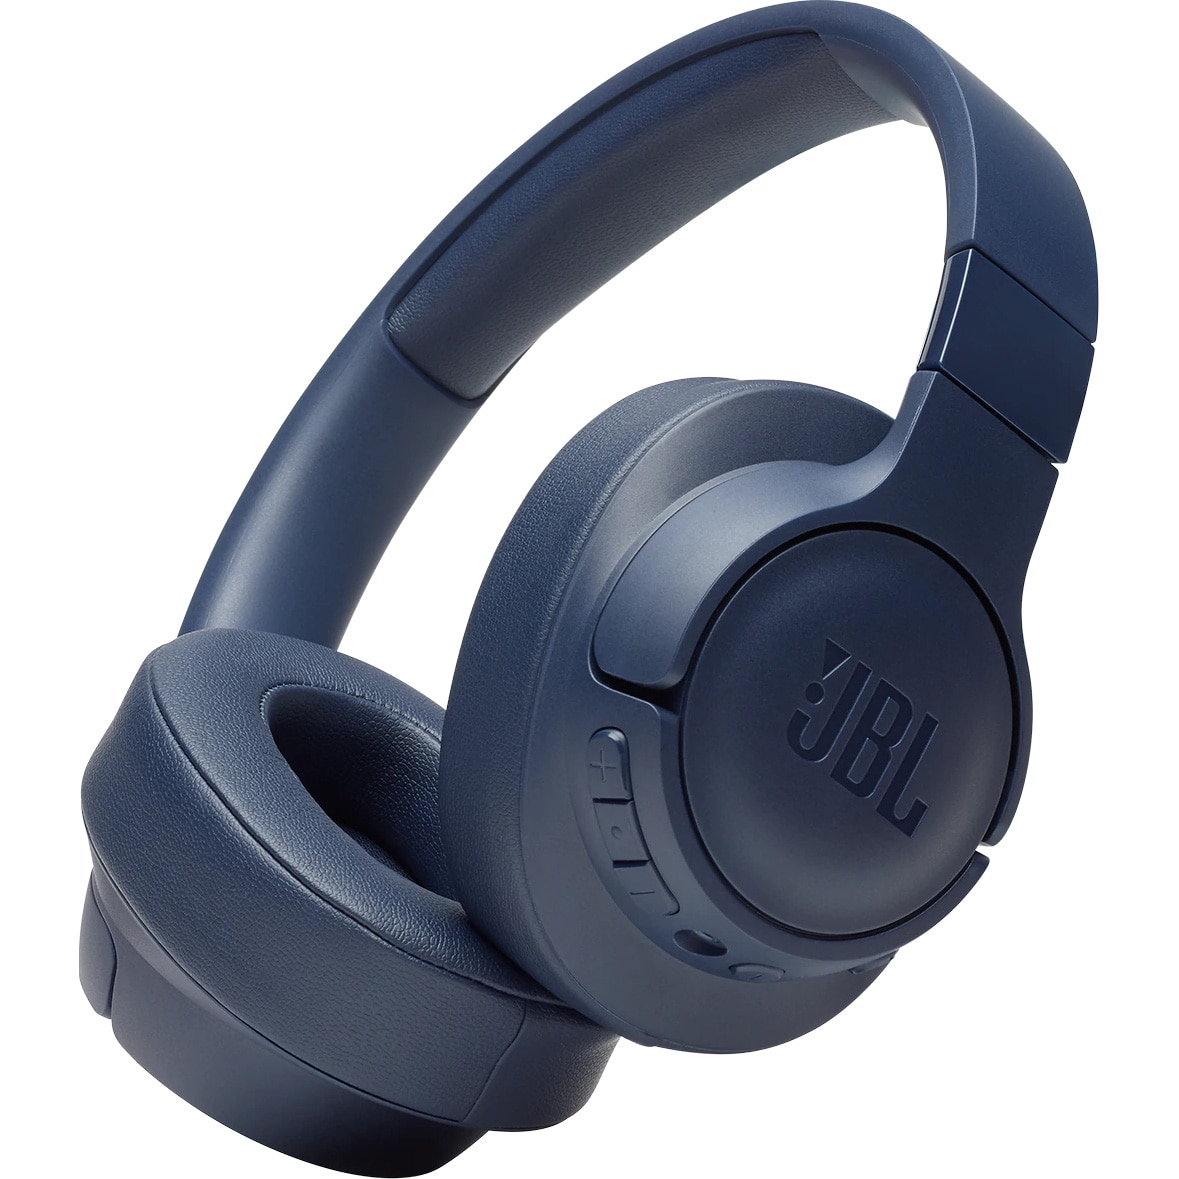 Fotografie Casti JBL TUNE 750, Active Noise Cancelling, Pure Bass, Hands-Free & Voice Control, Multi-Point Connection, Bluetooth Streaming, 15H Playback, Albastru